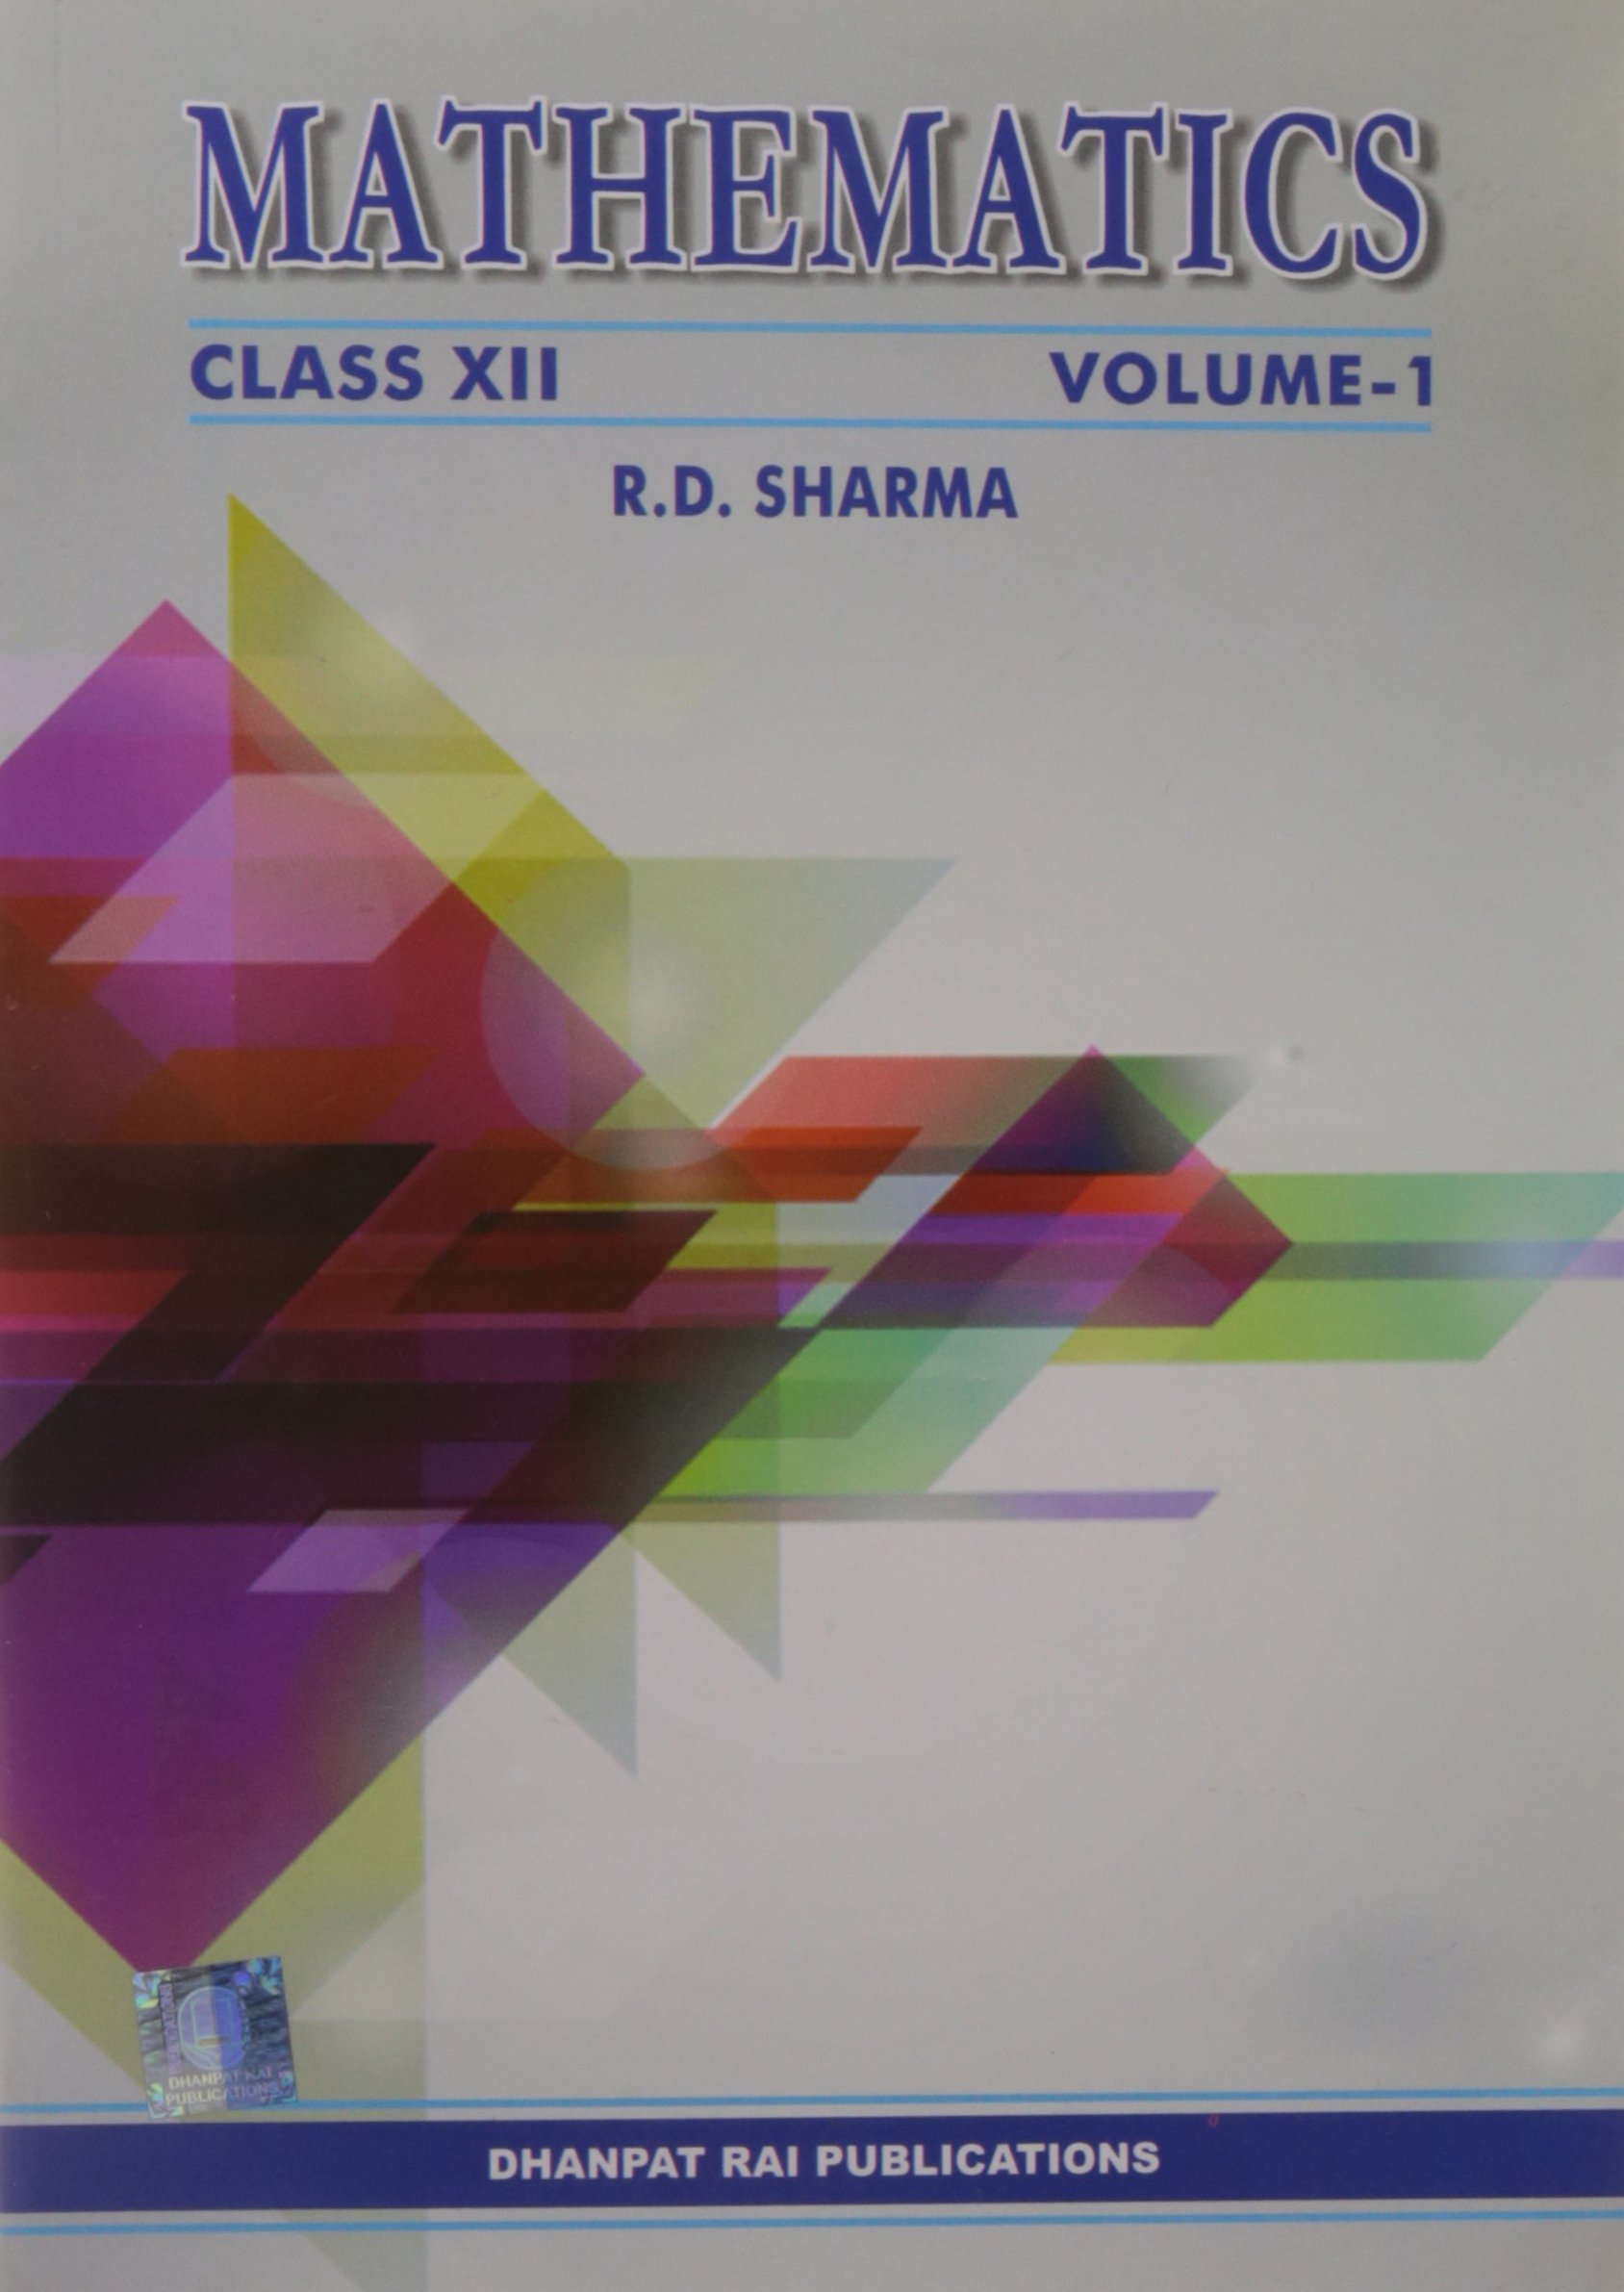 Mathematics - Class XII (Set of 2 Volumes): 9789383182367